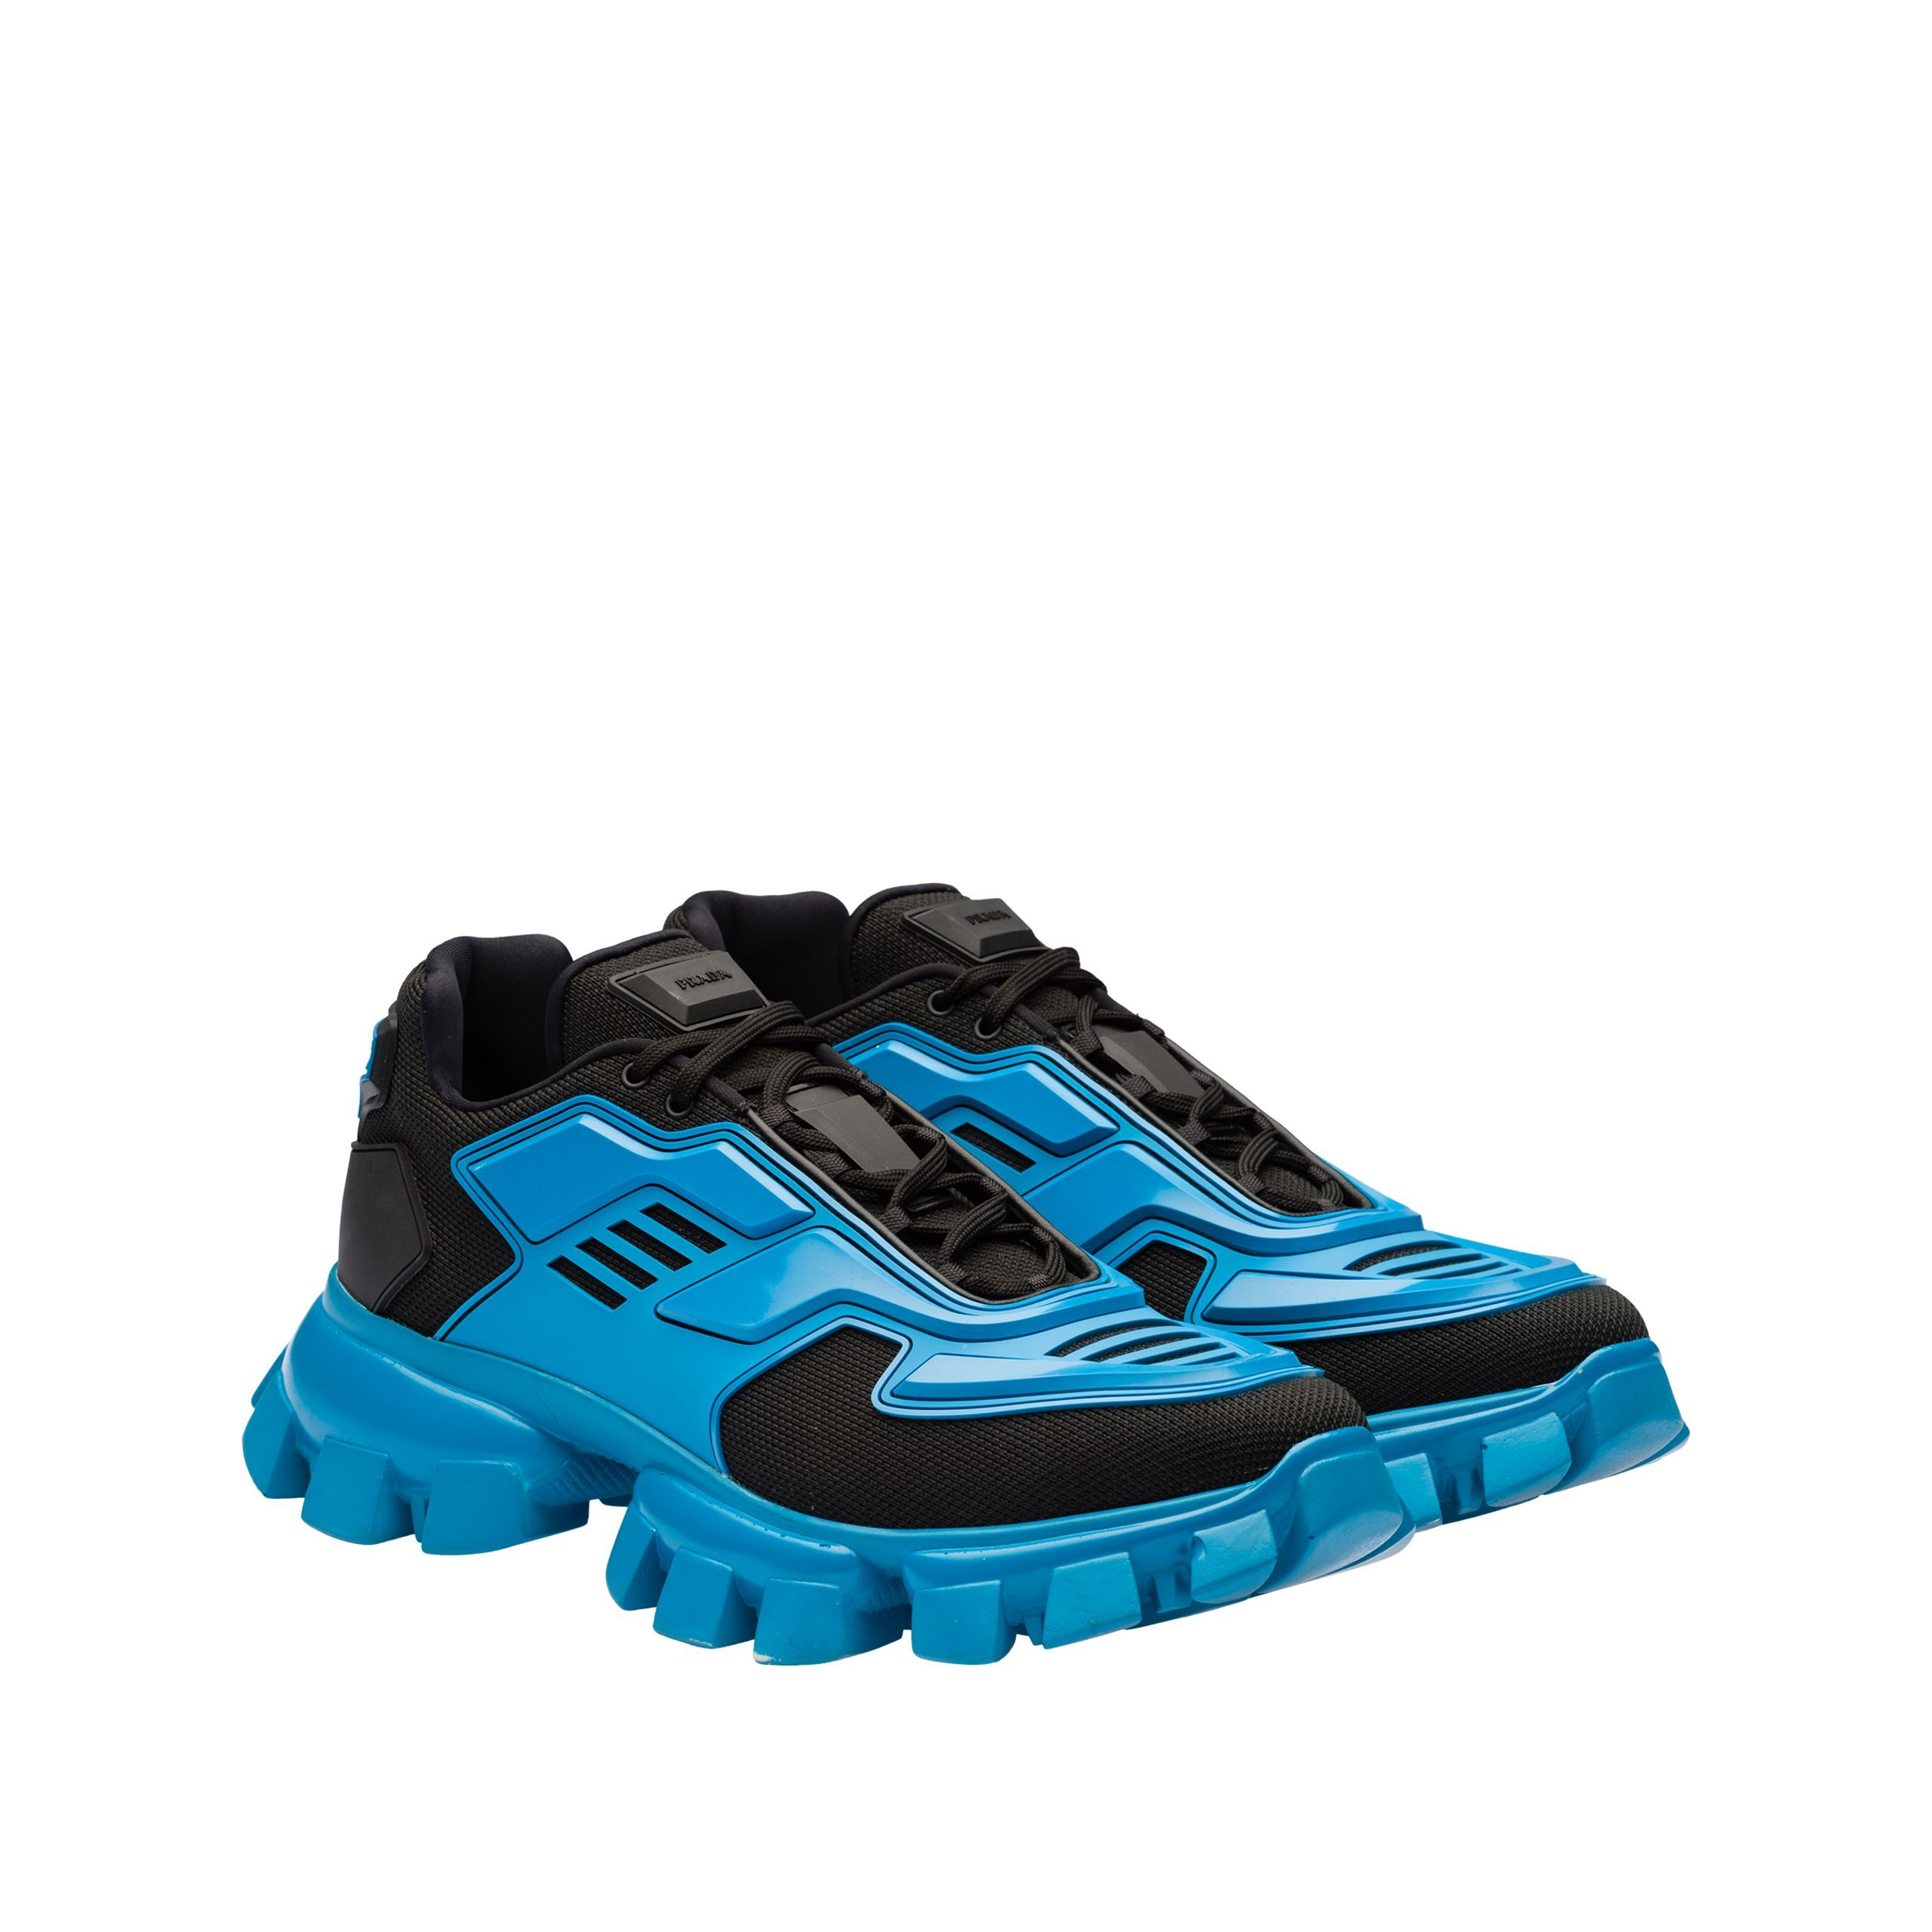 5c57f77eb1f Cloudbust Thunder Strick-Sneakers in 2019 | MENS FASHION SNEAKERS ...